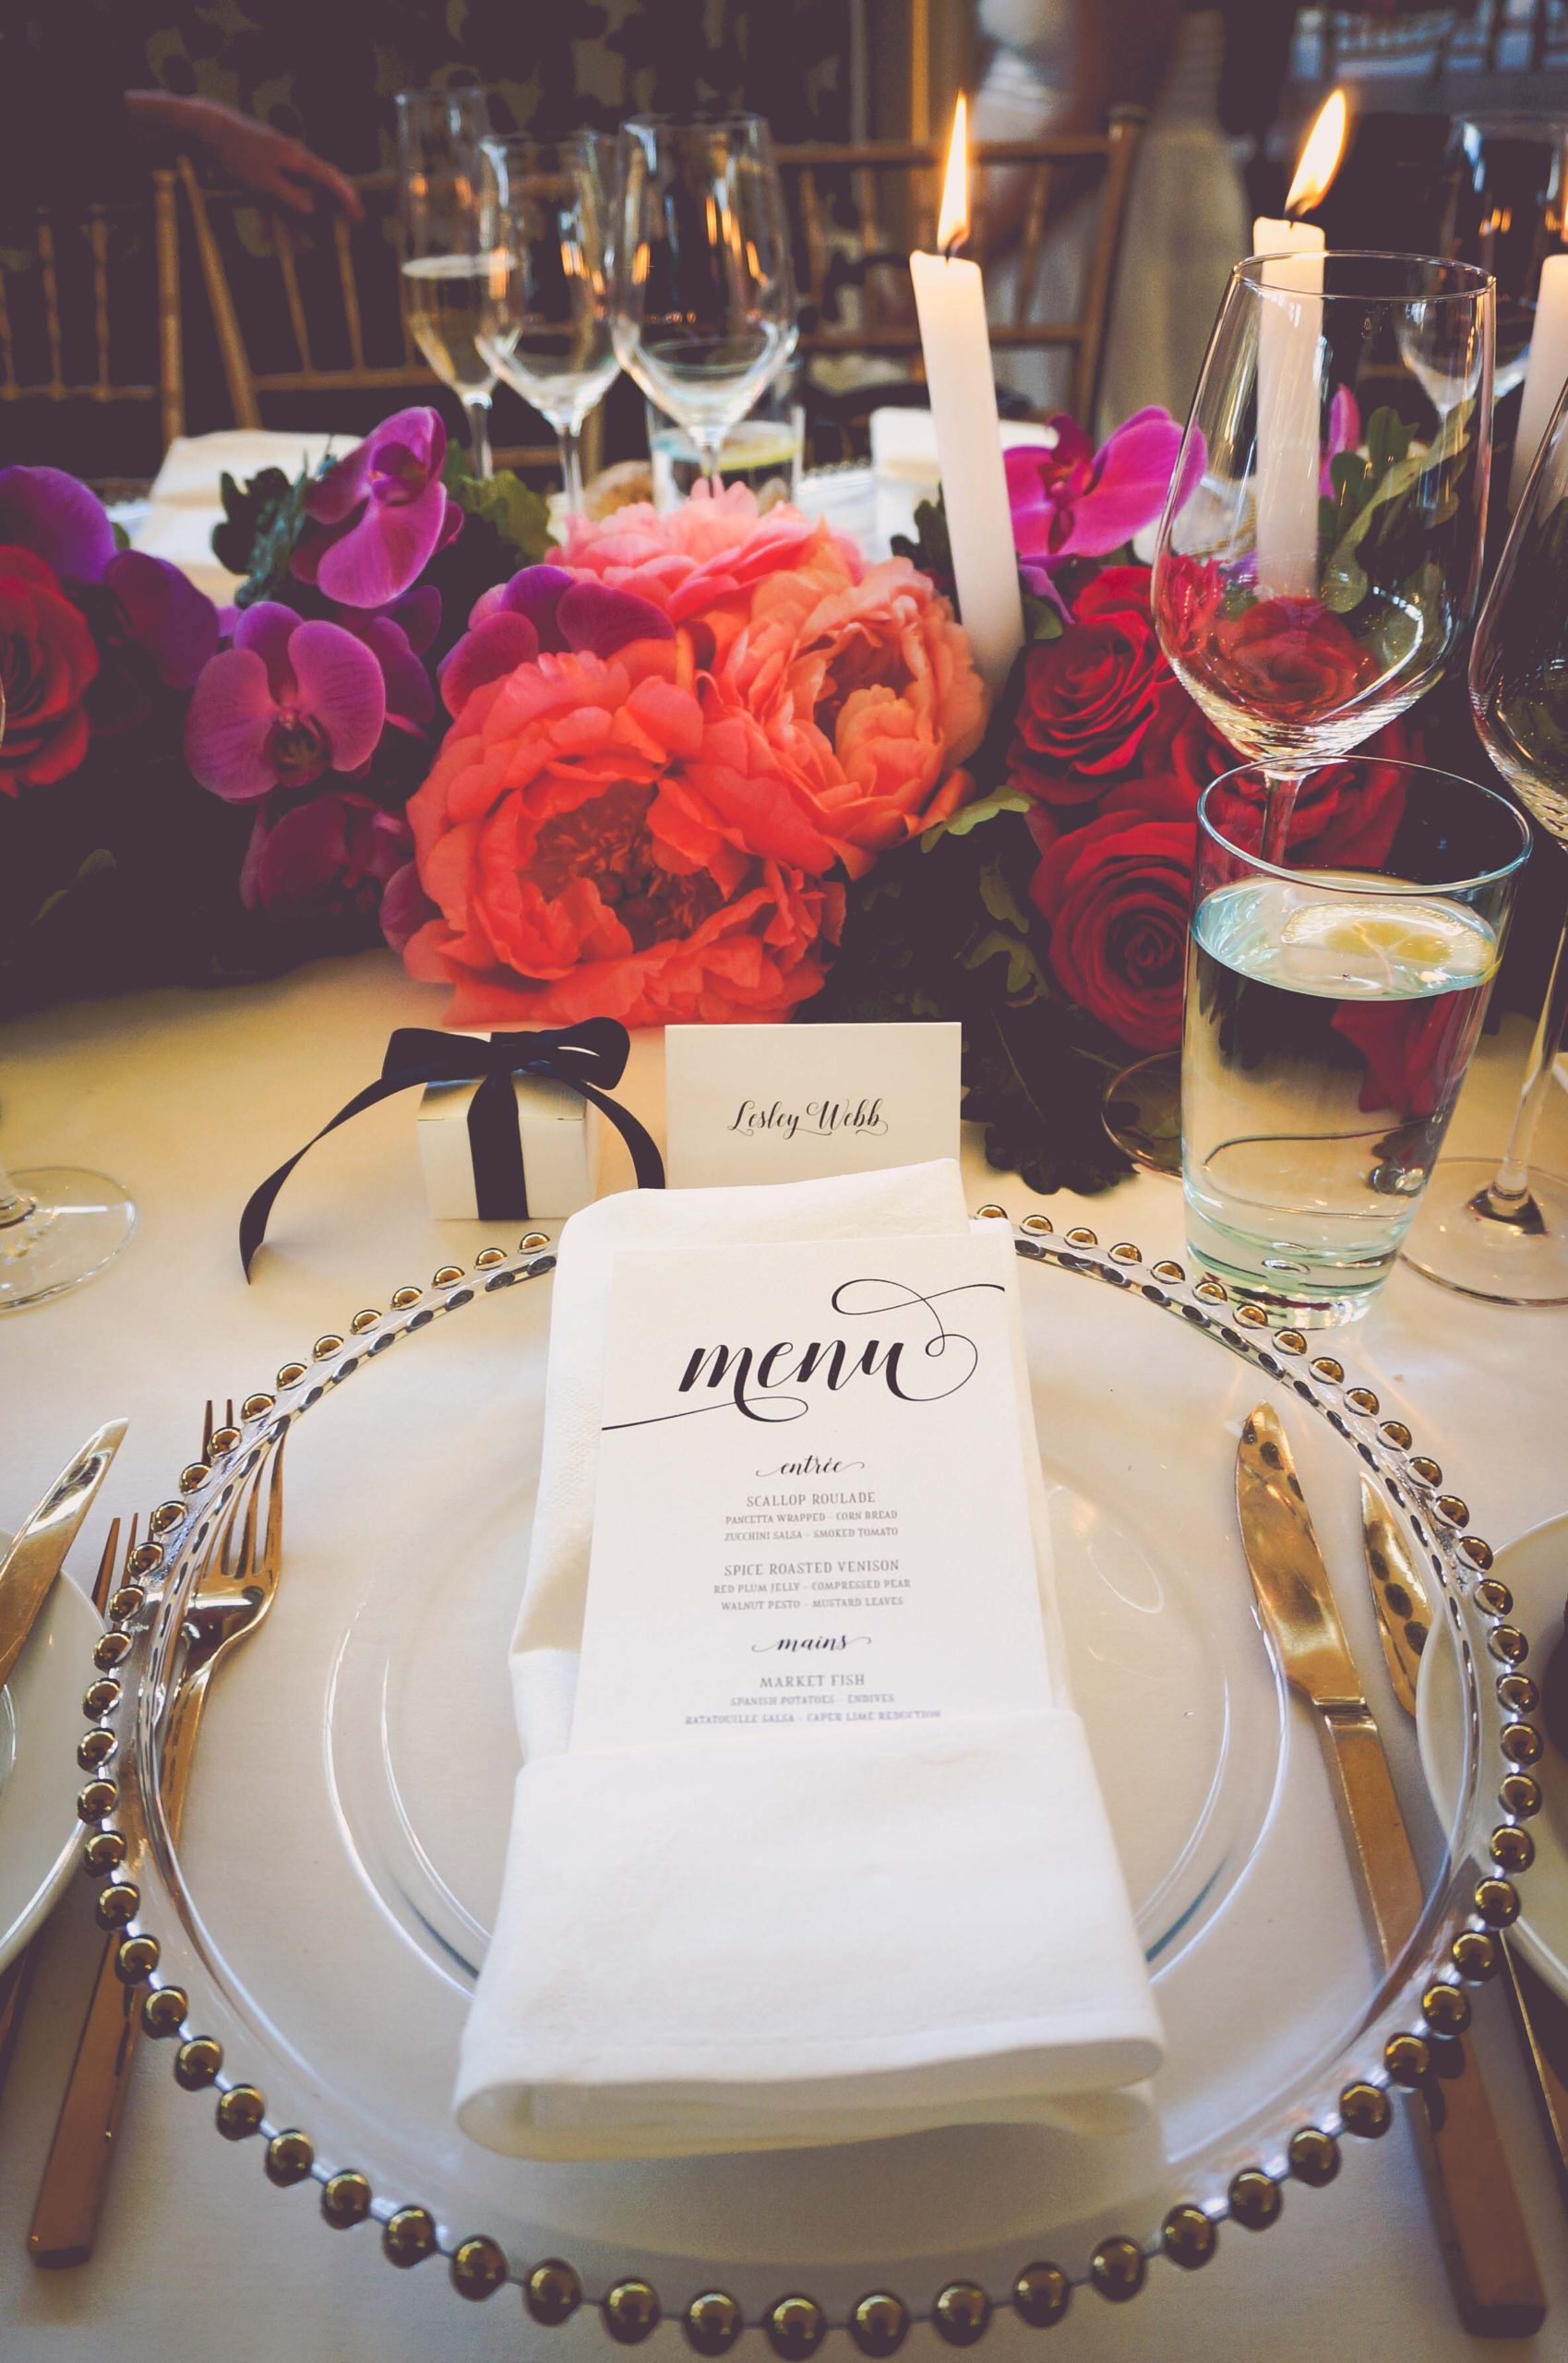 Wedding place setting with menu